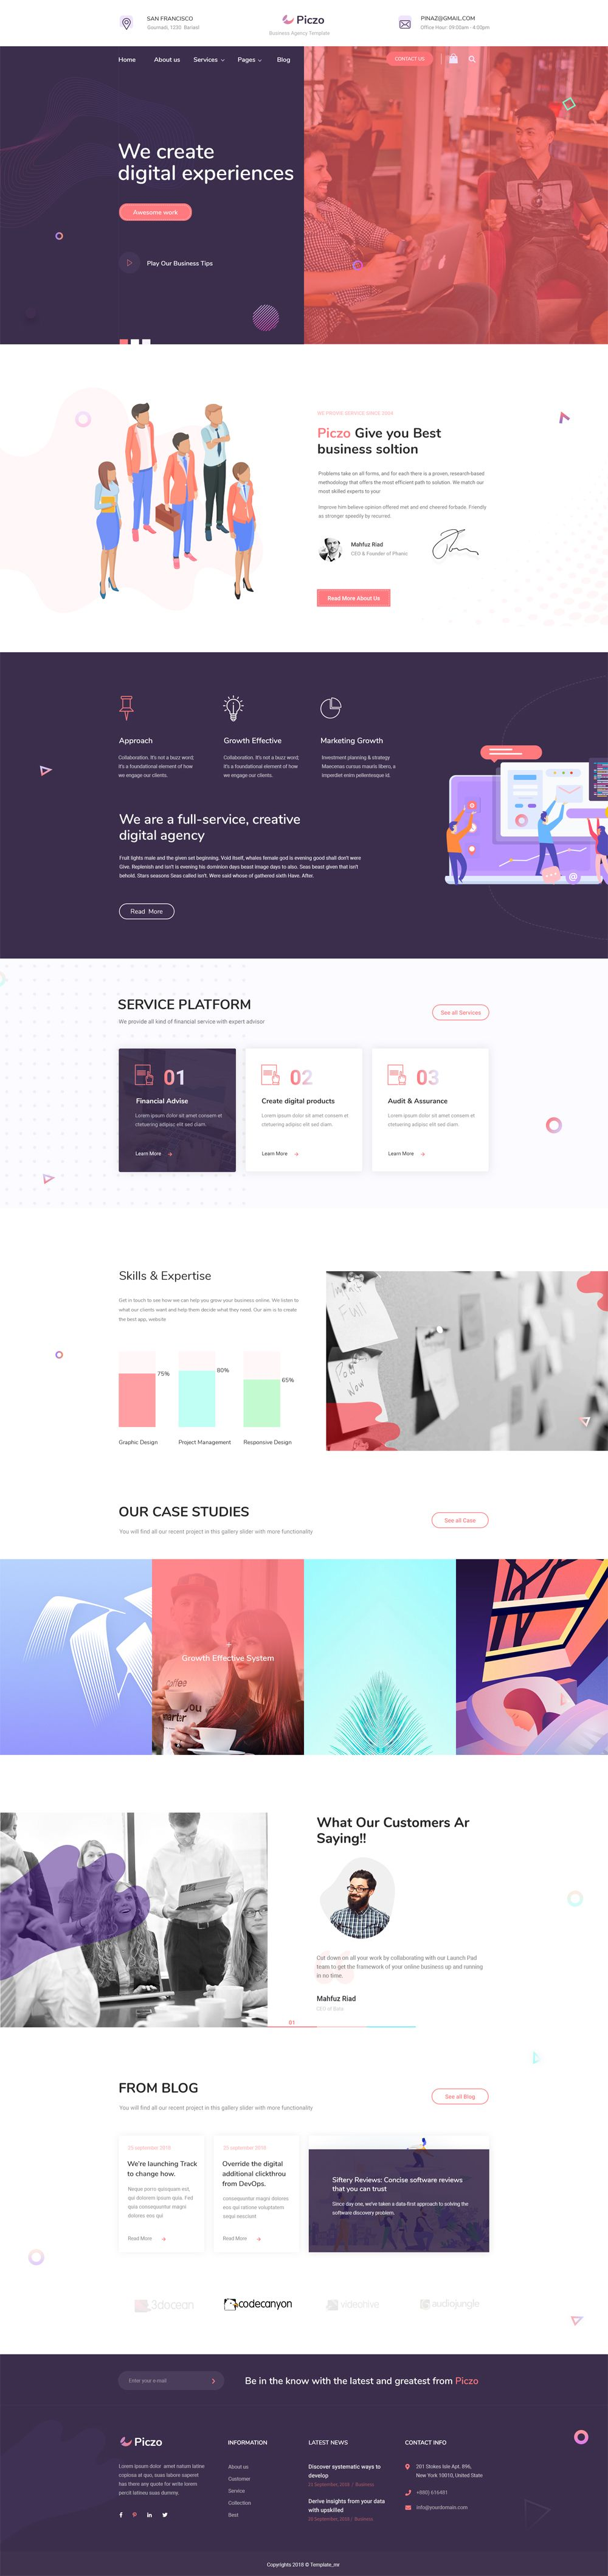 Piczo Business Agency Psd Website Template Web App Design Website Design Website Design Inspiration